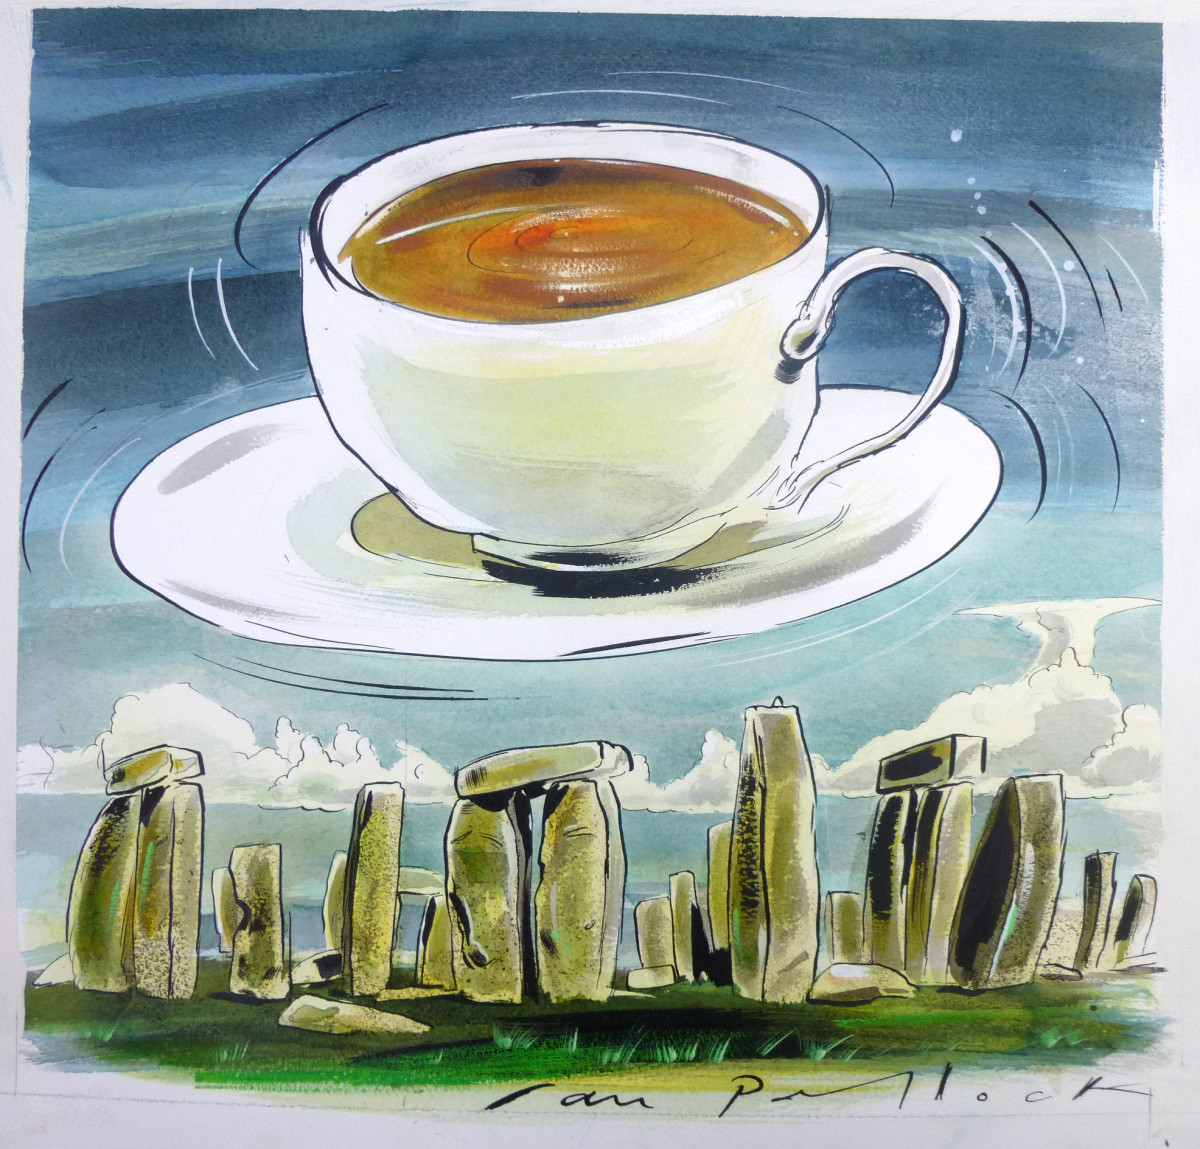 """Illustration by Ian Pollock: """"The Holy Grail is a cup of tea!"""" http://www.ianpollock.co.uk/"""